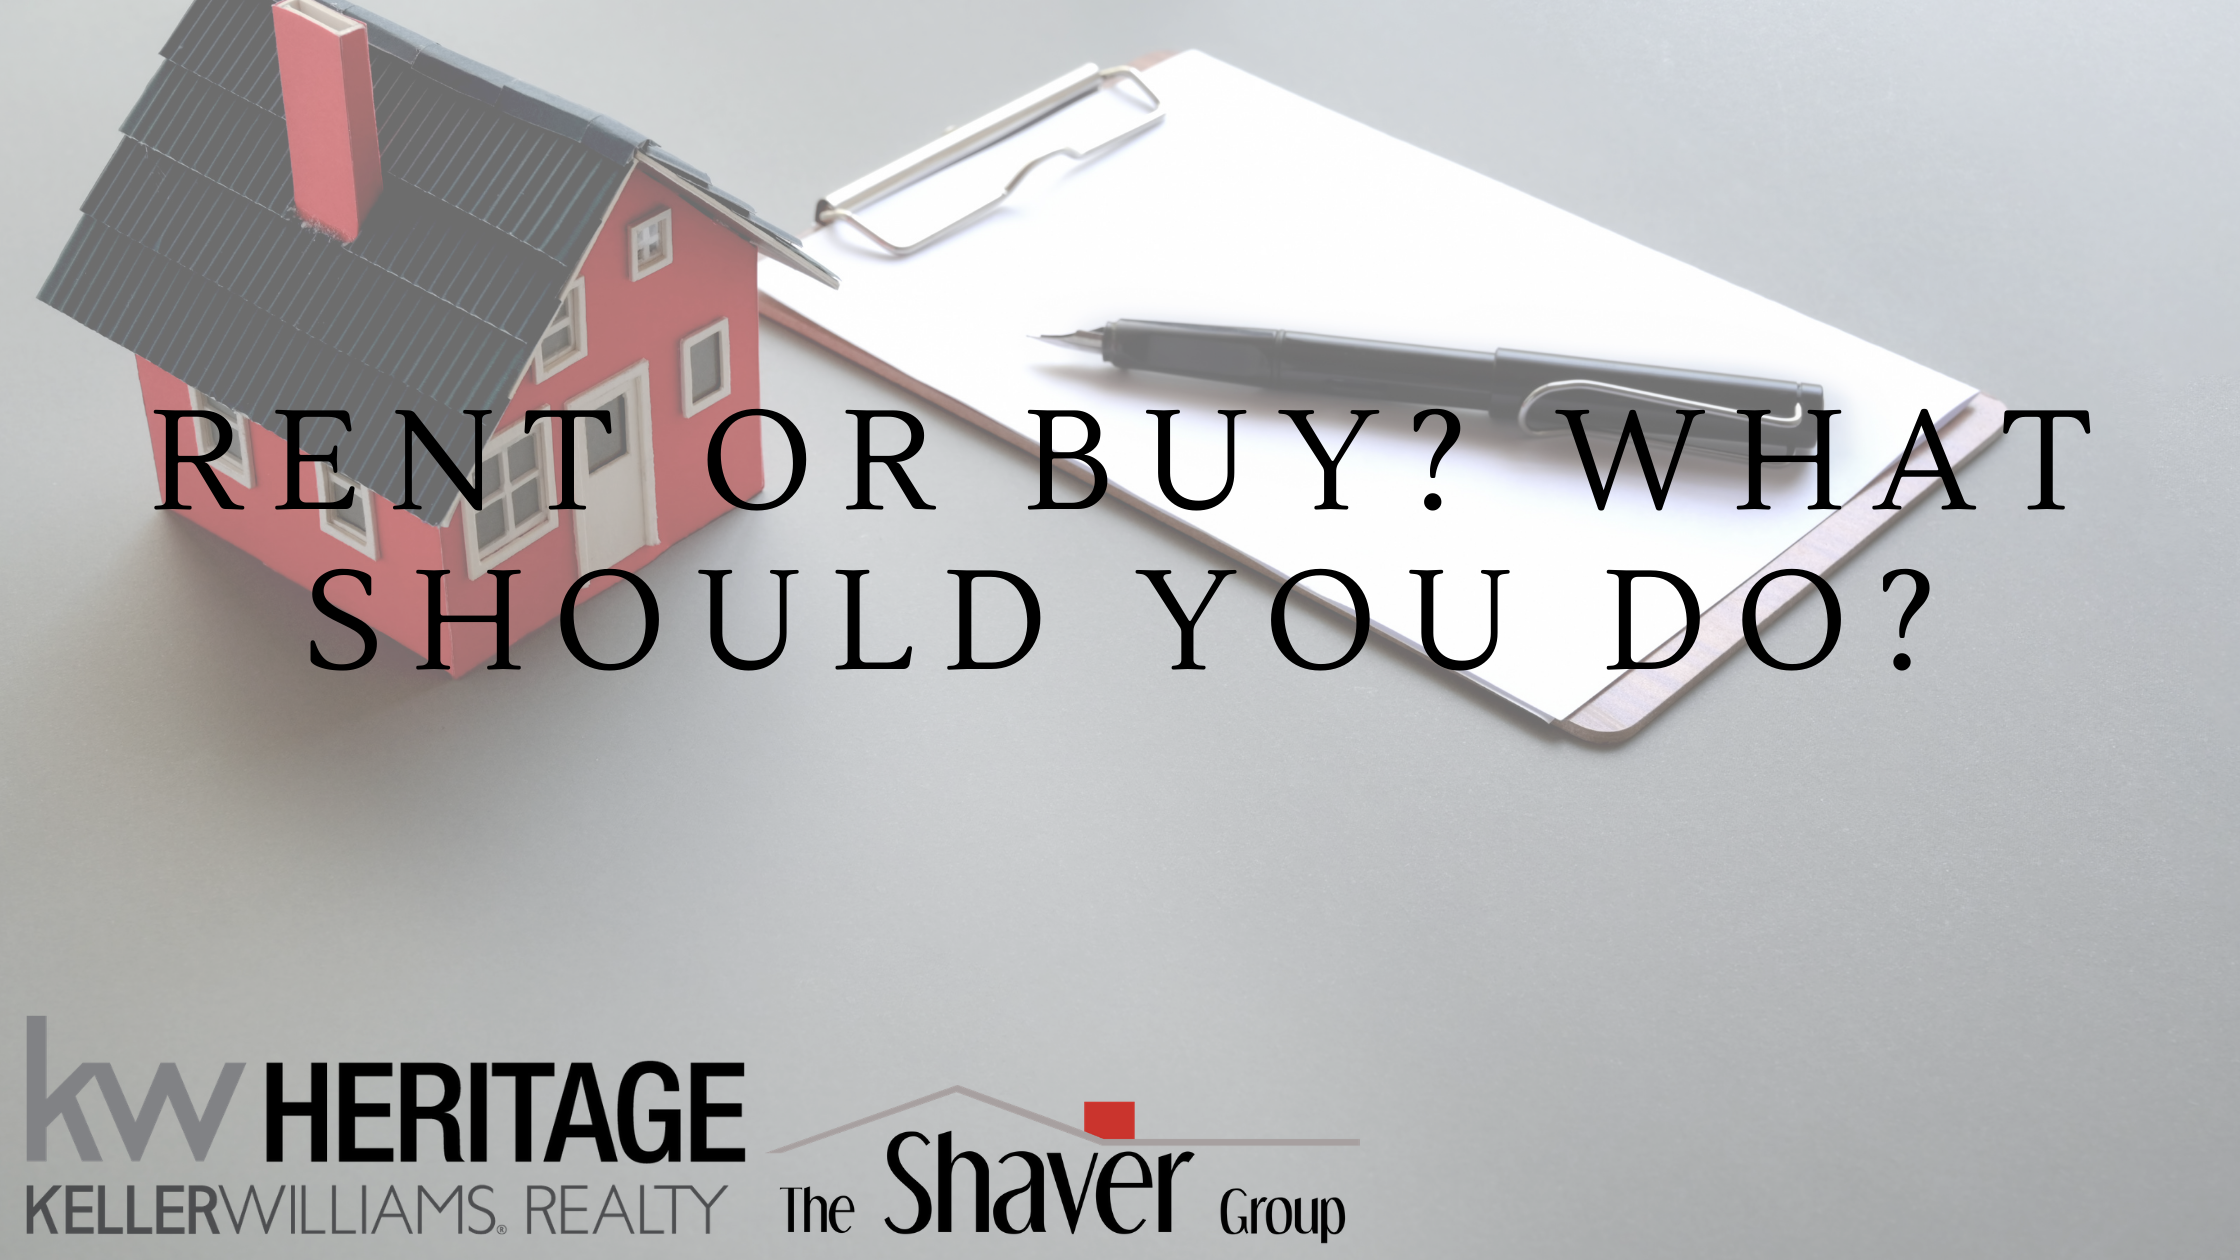 RENT OR BUY? WHAT SHOULD YOU DO?